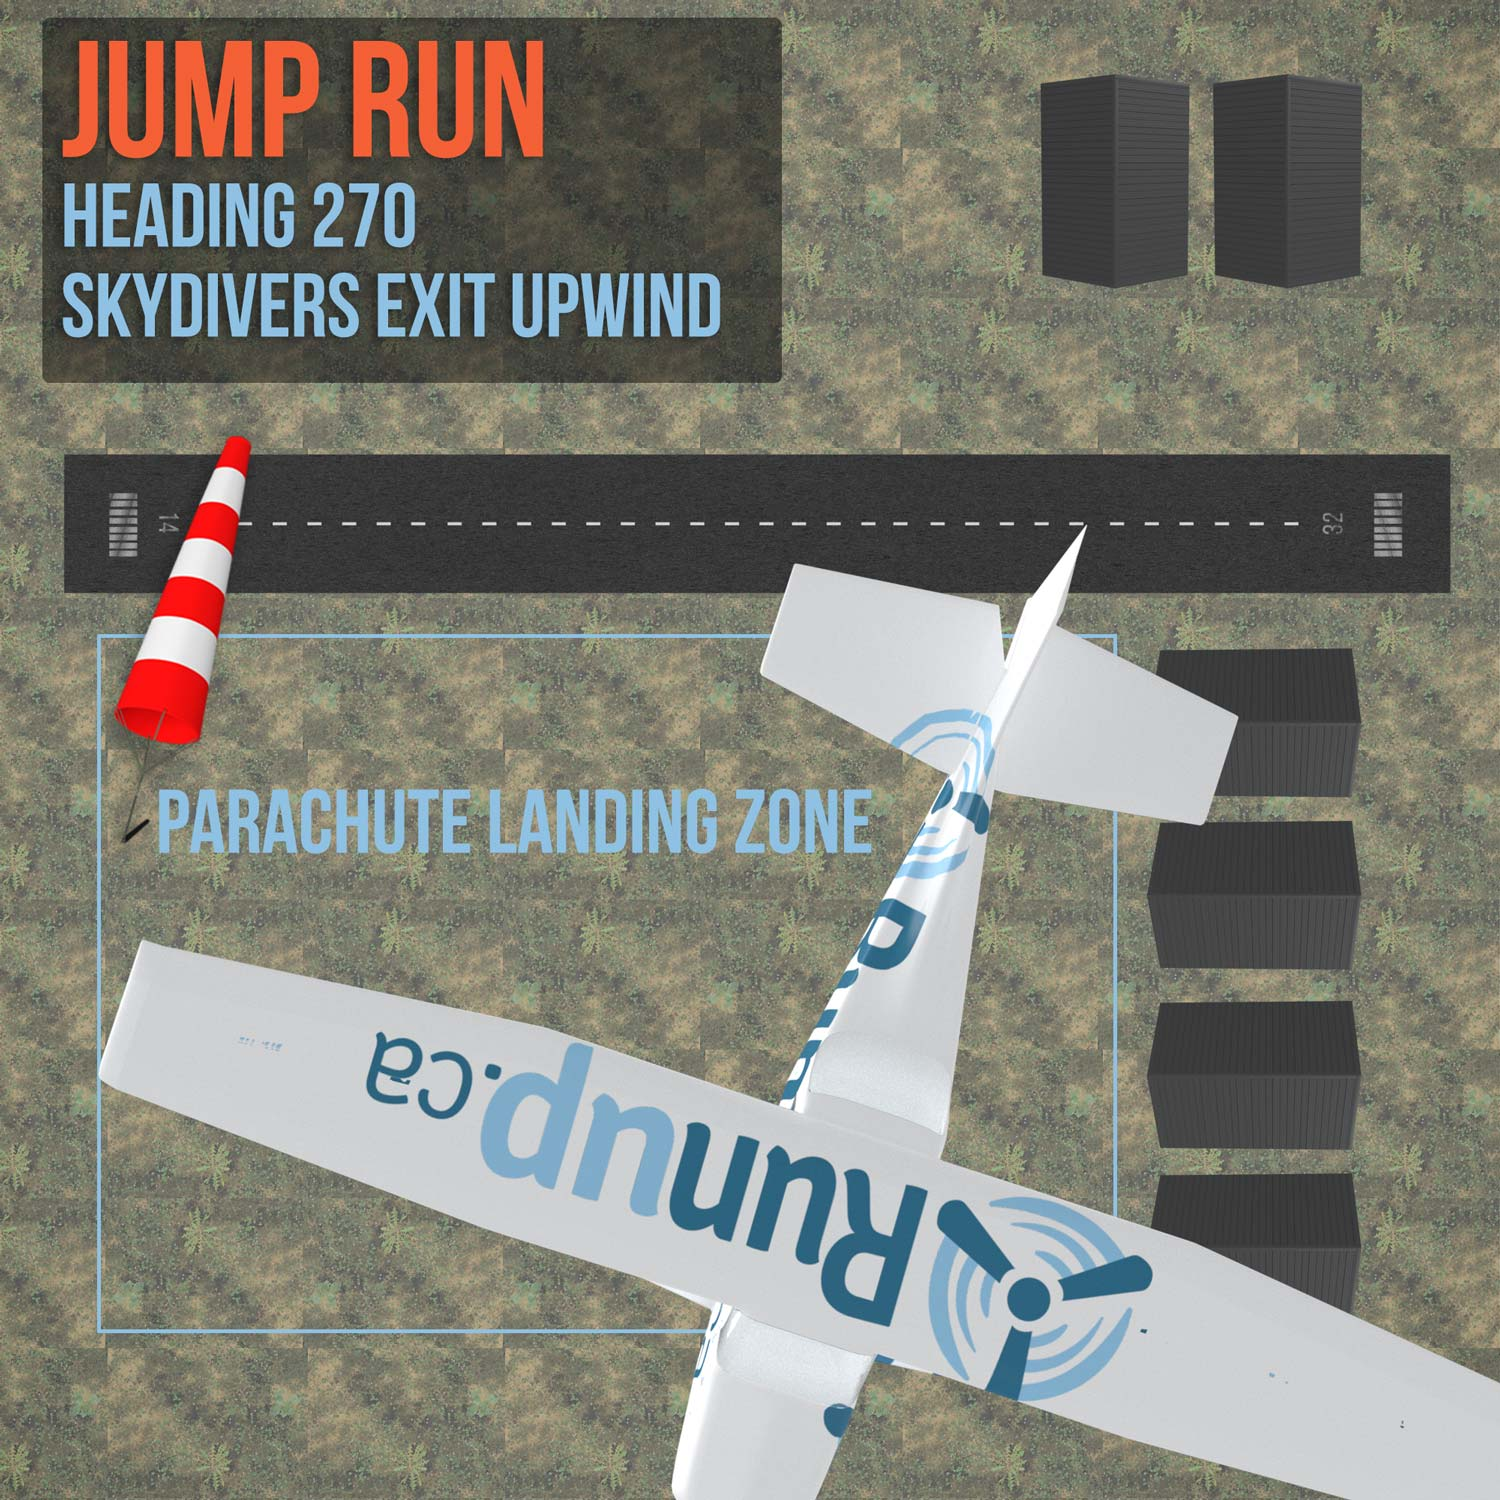 How to become a skydive jump pilot